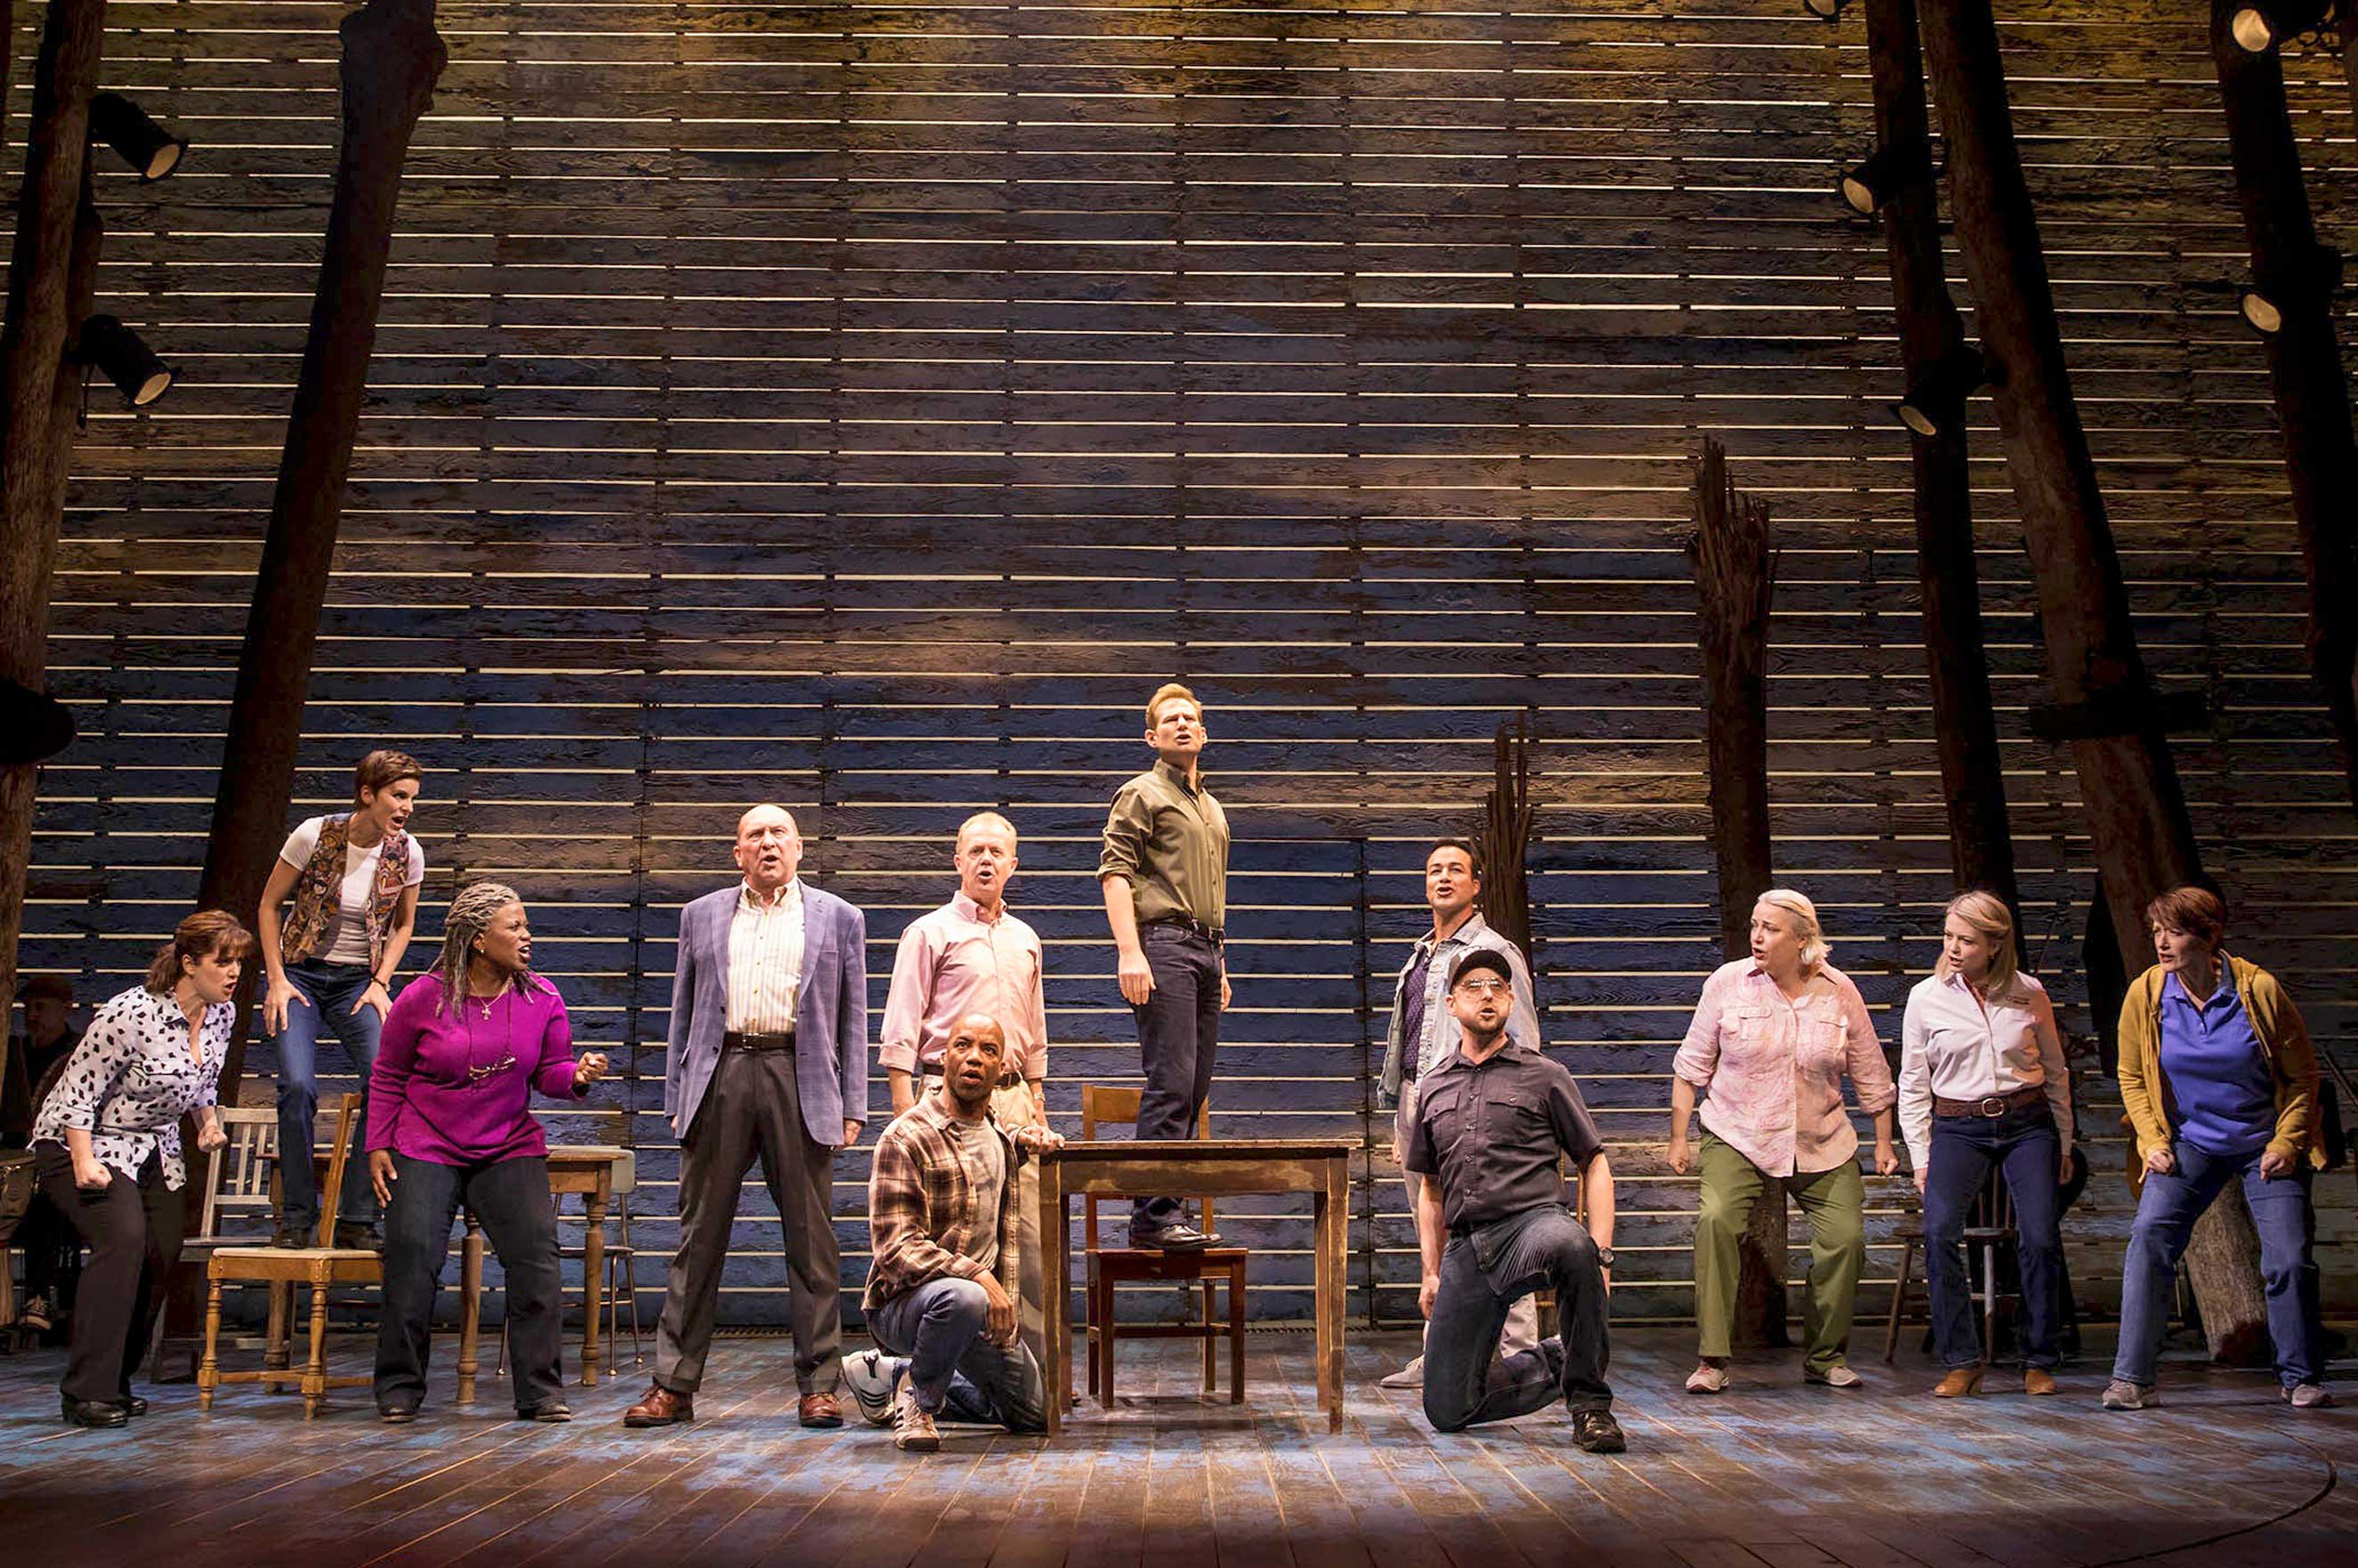 A small Canadian town becomes an unlikely host in Come From Away